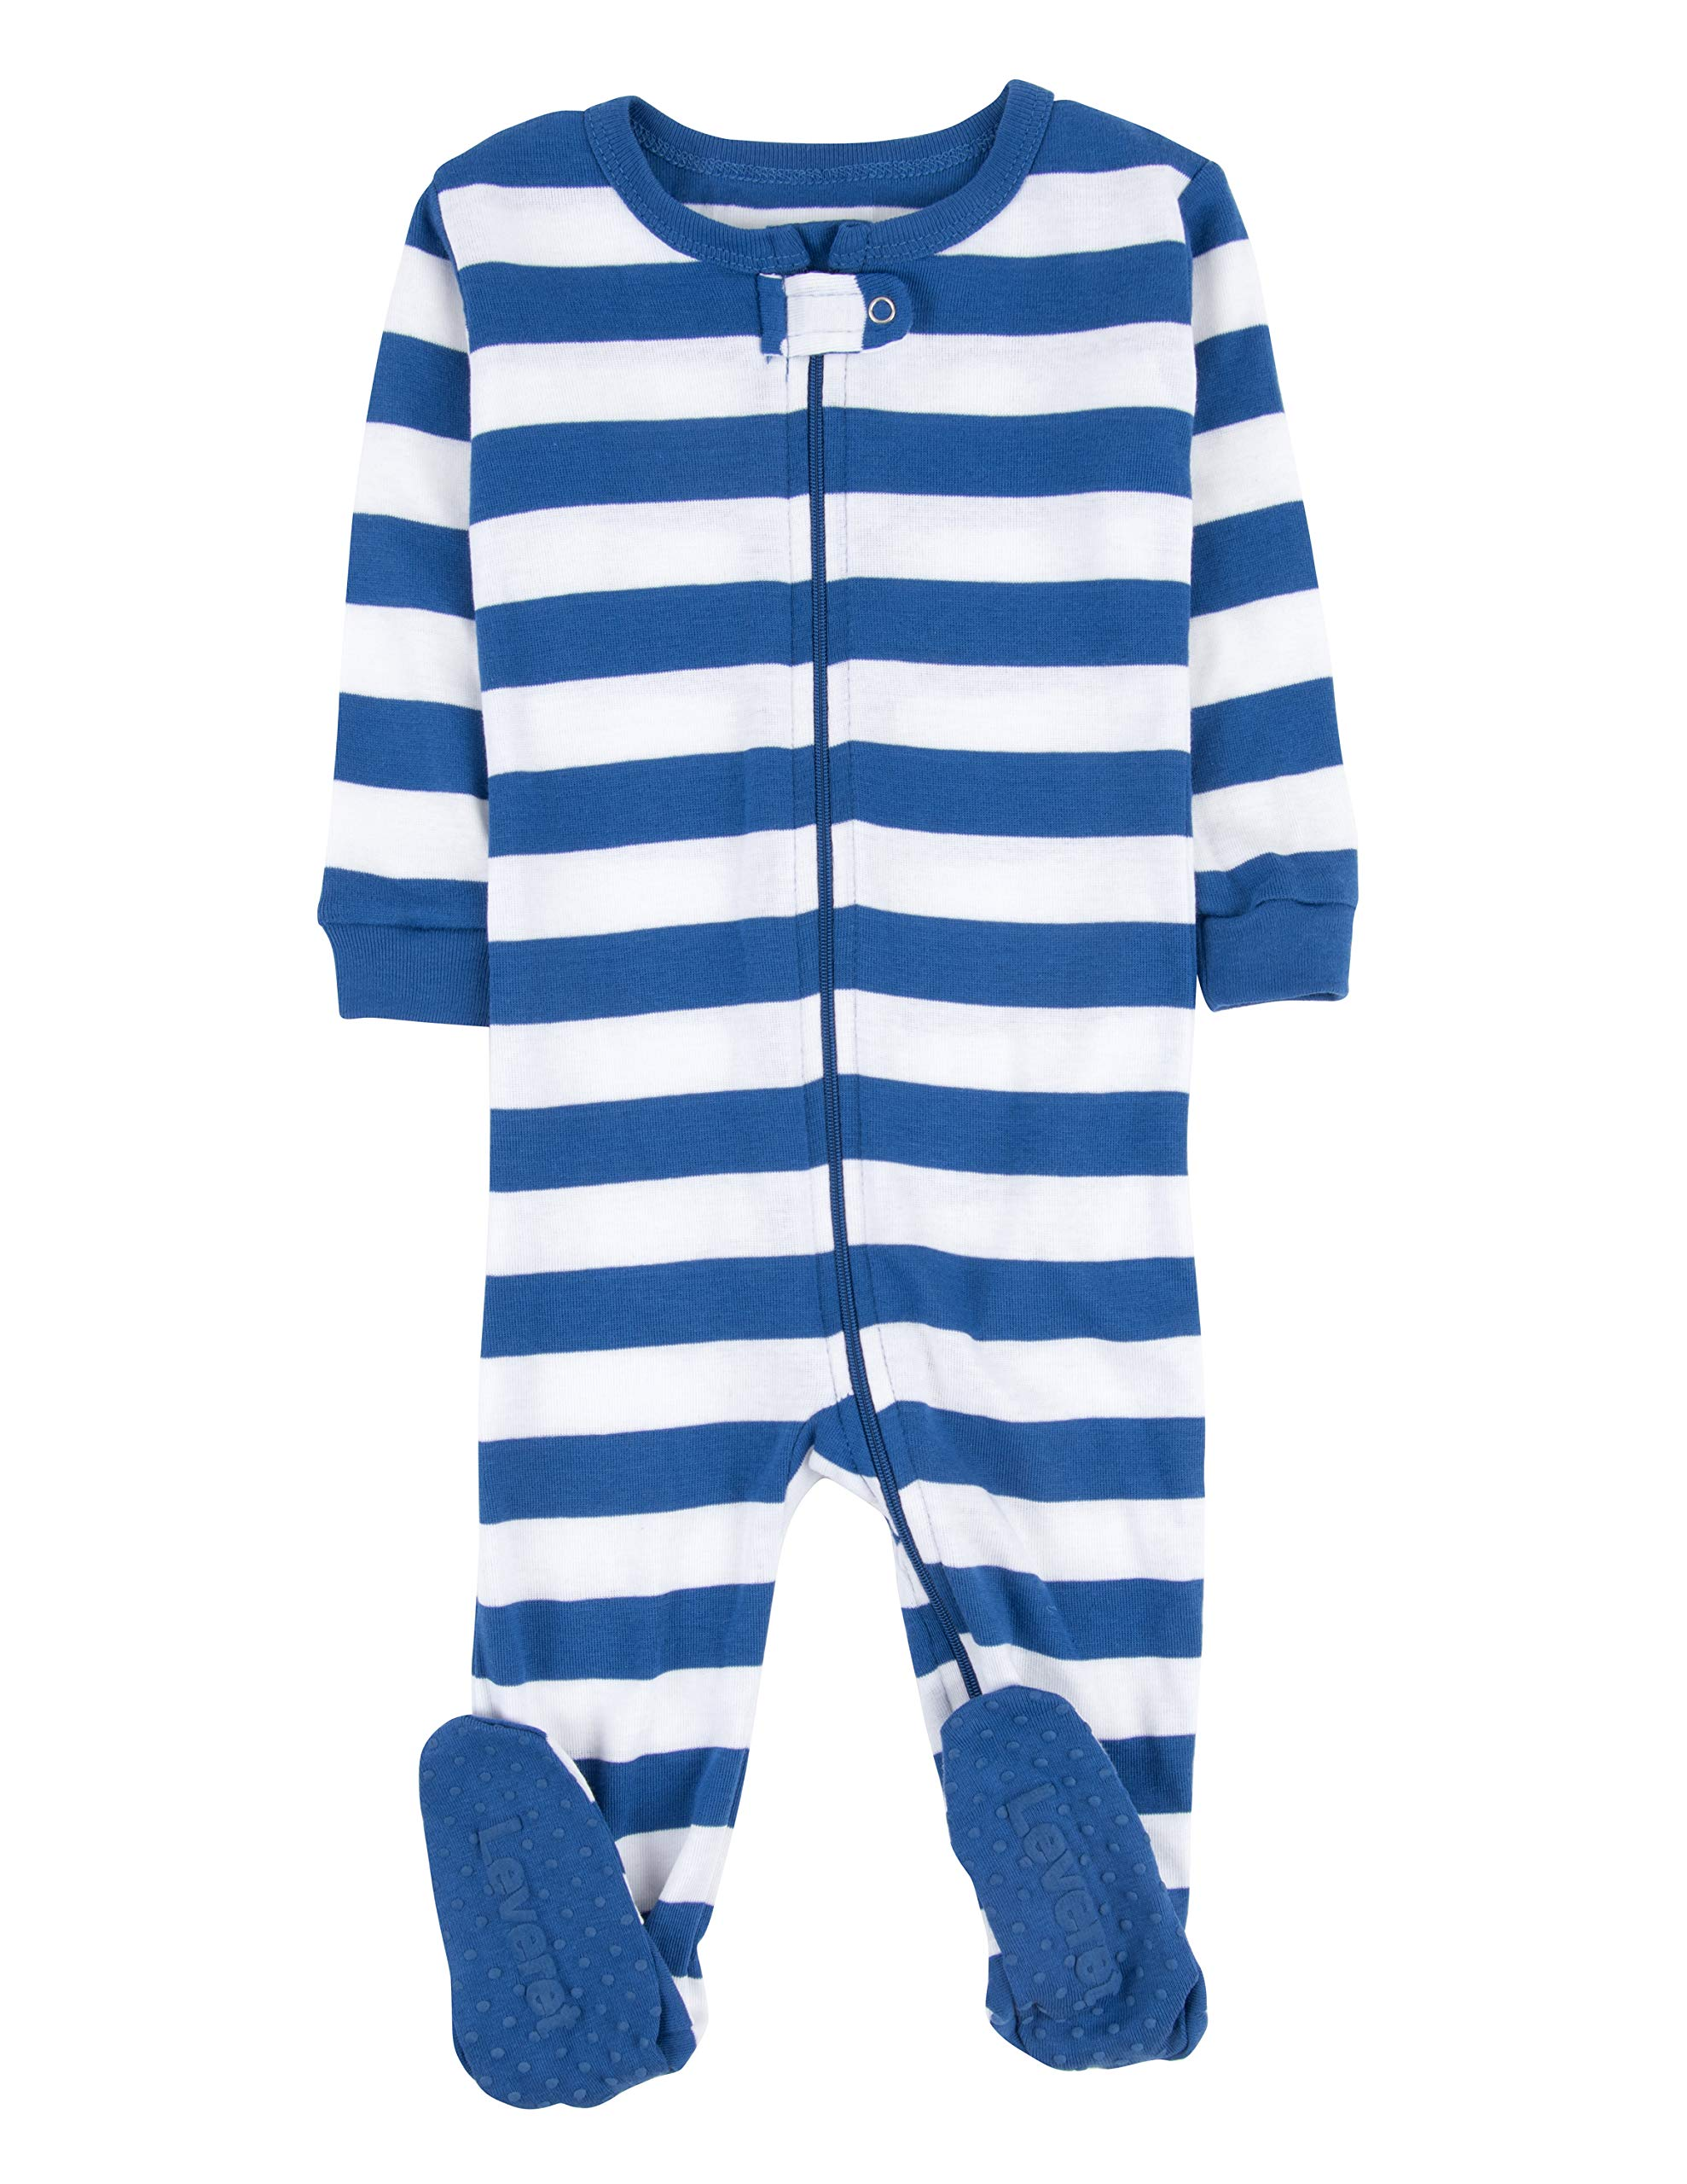 Leveret Striped Footed Pajama Sleeper 100% Cotton